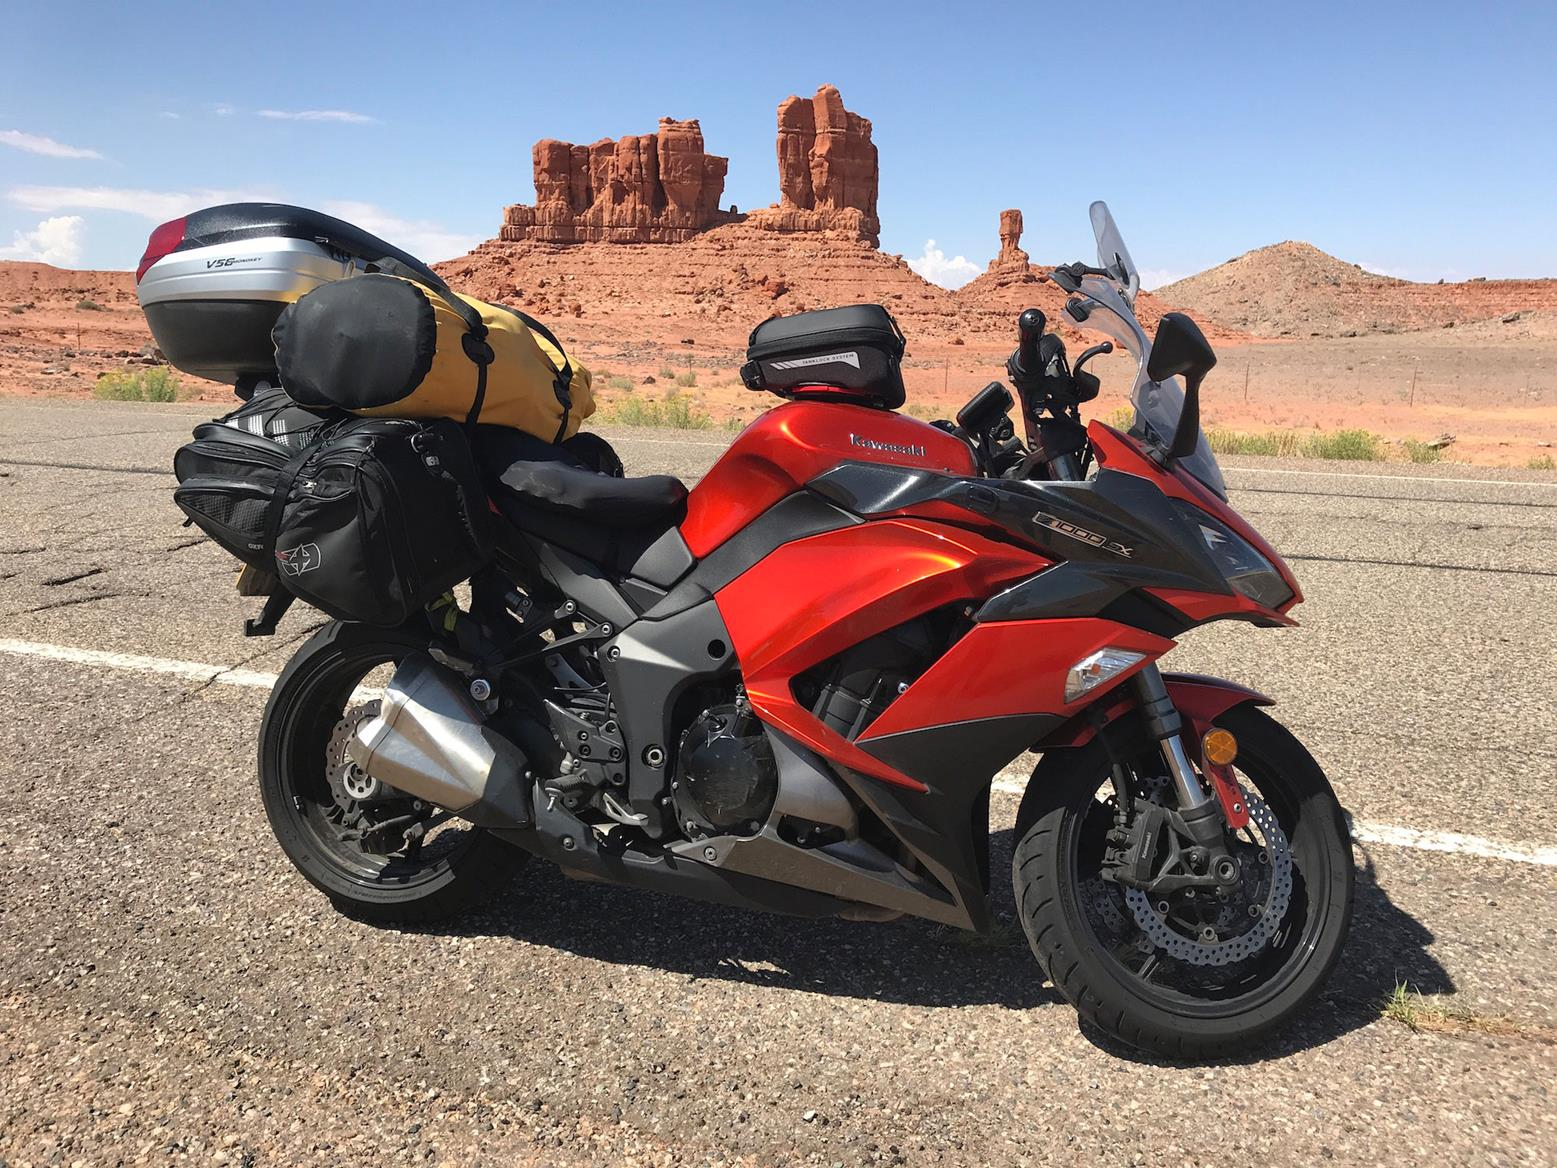 The Kawasaki Z1000SX in front of some striking desert rock formations